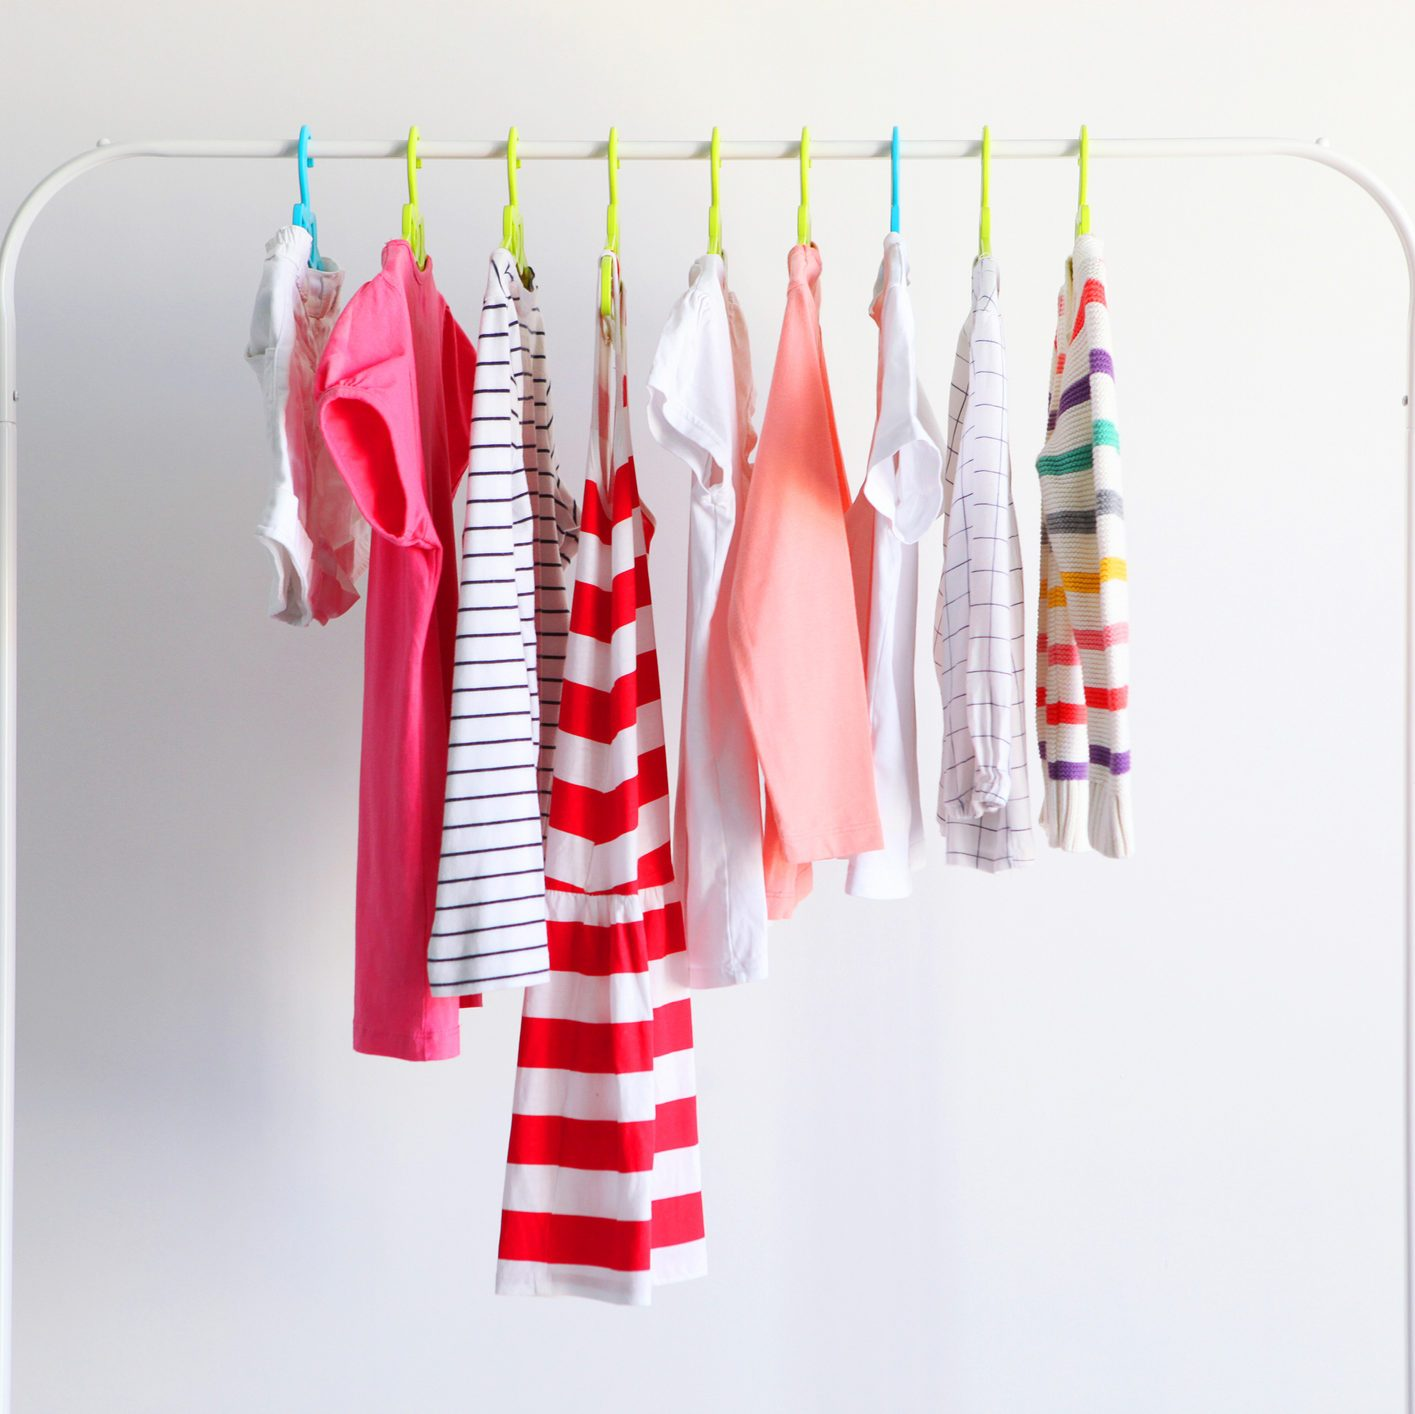 Children clothes on a rack on a light background. Children's clothing, children's stores.